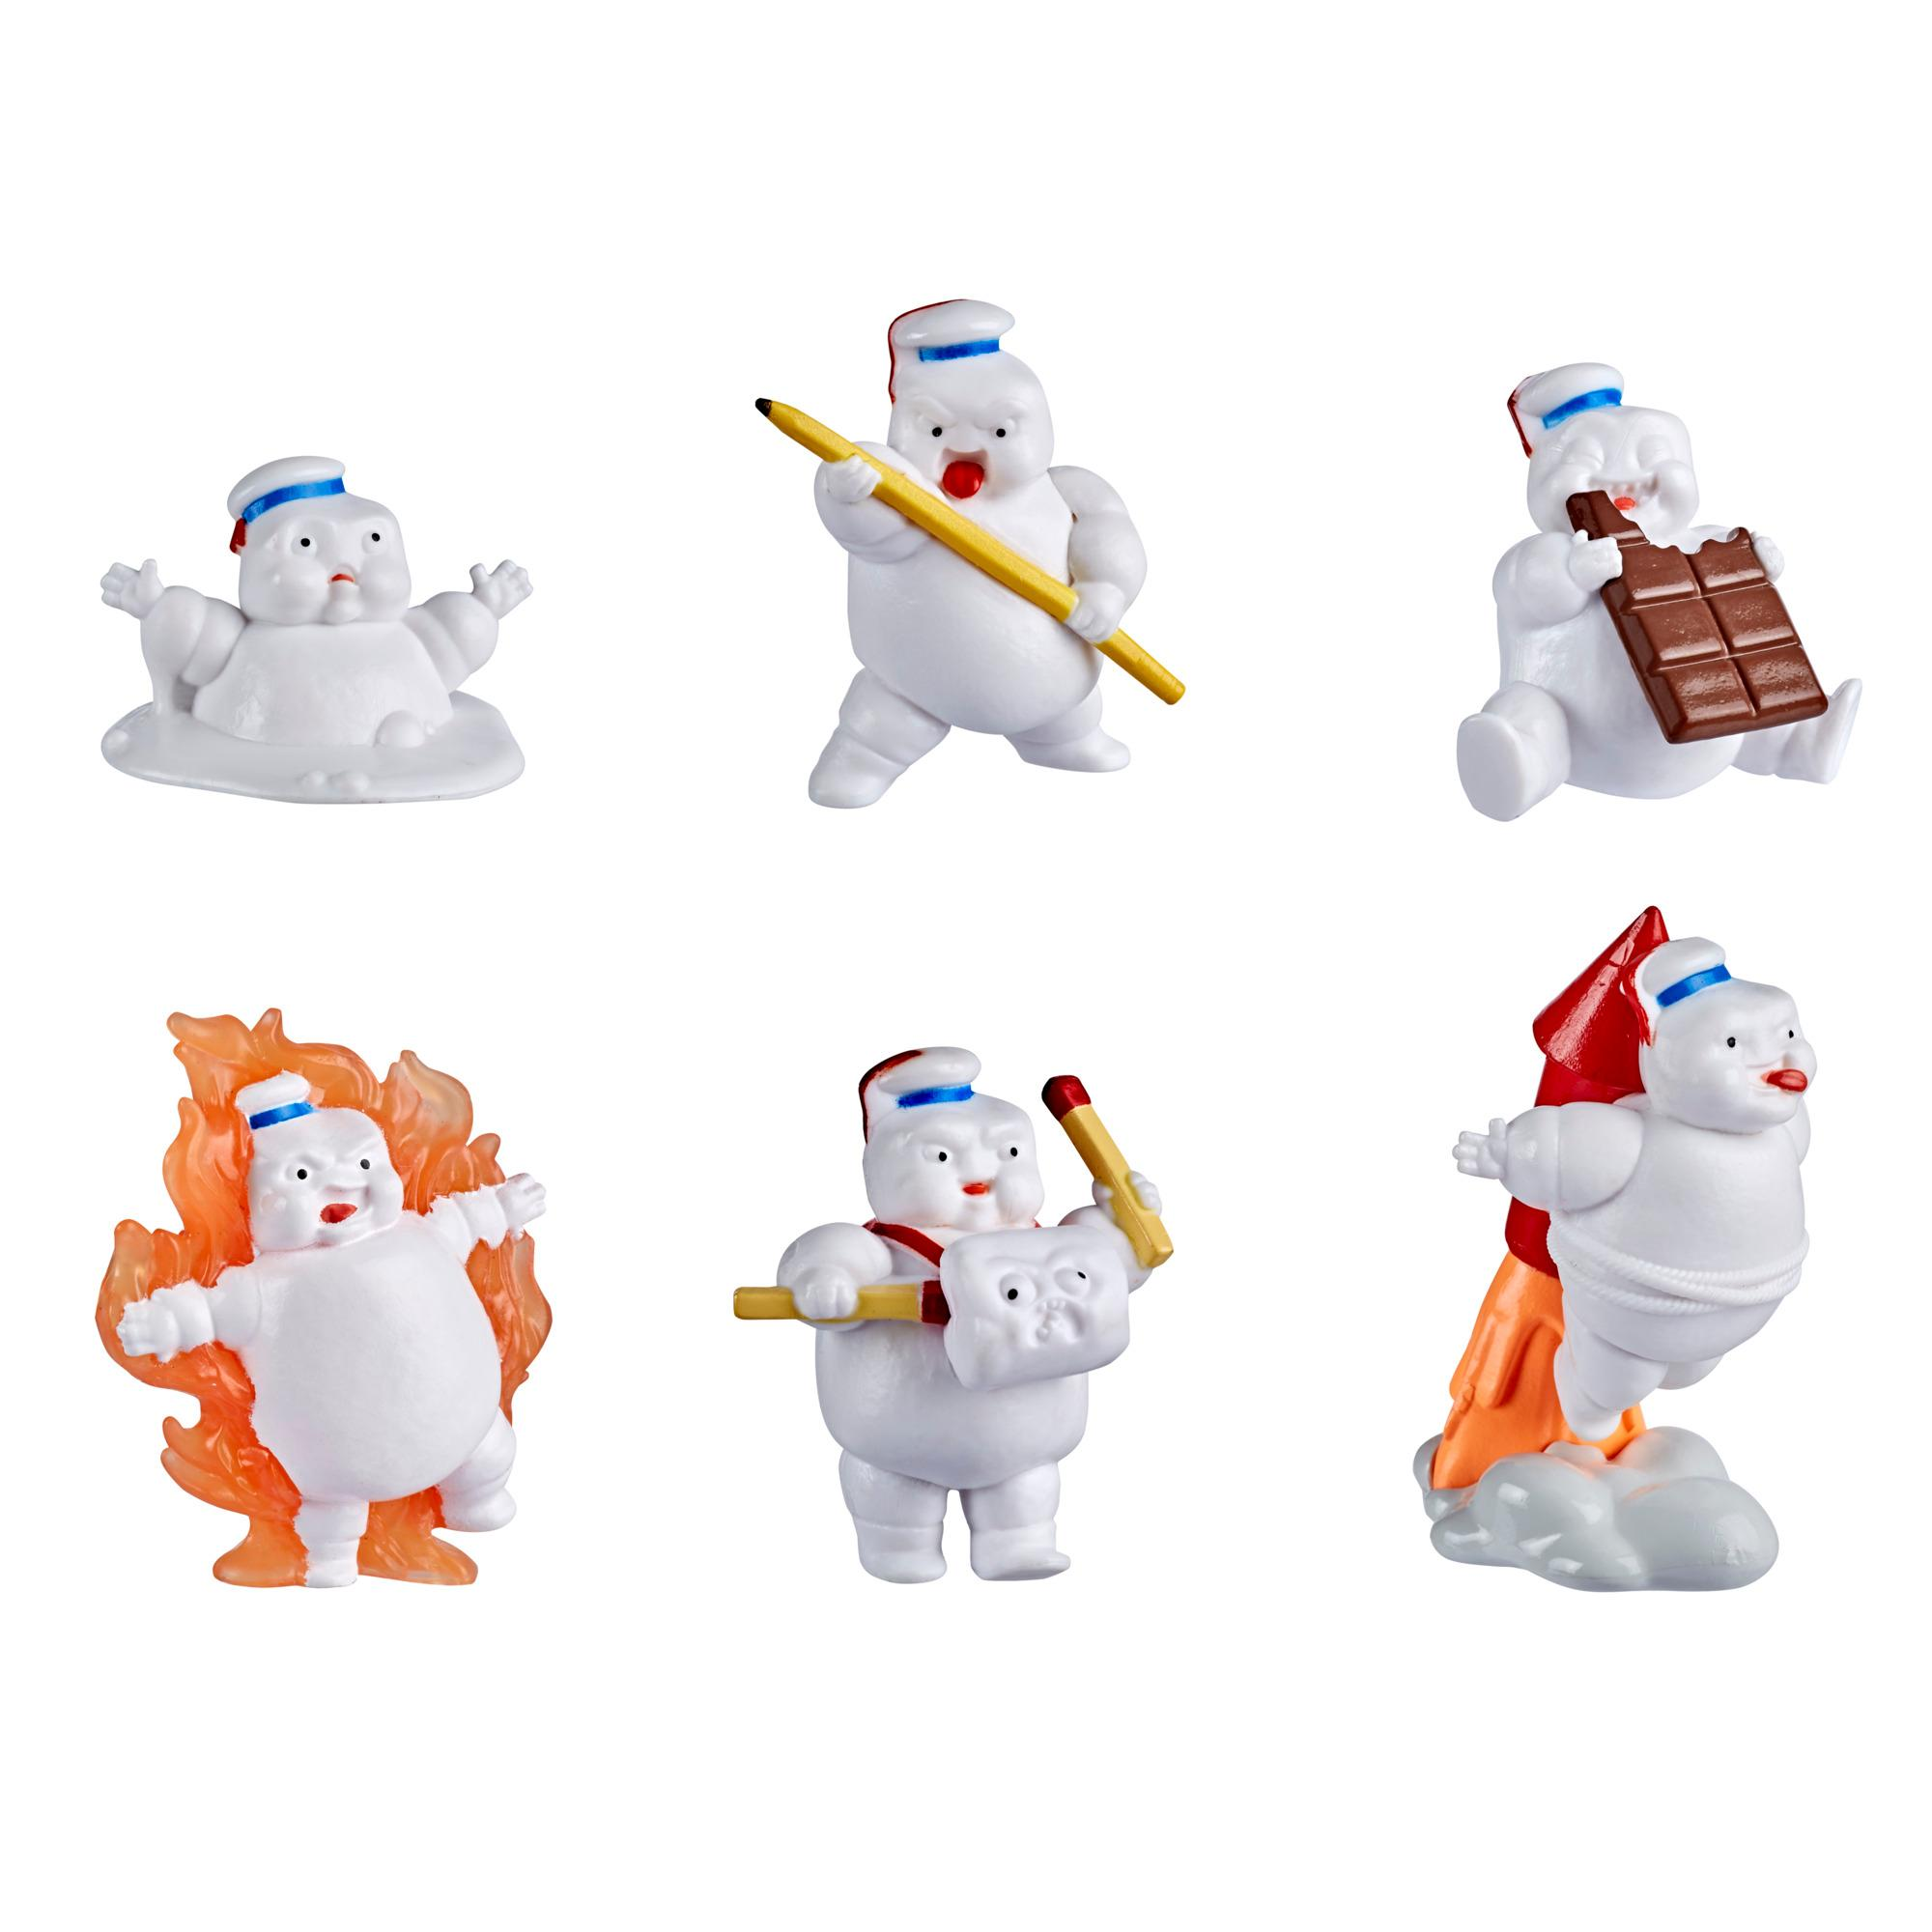 Ghostbusters Stay Puft Products Mini-Puft Surprise, Series 1, Randomly Assorted 1.5-Inch-Scale Figures, Ages 4 and Up